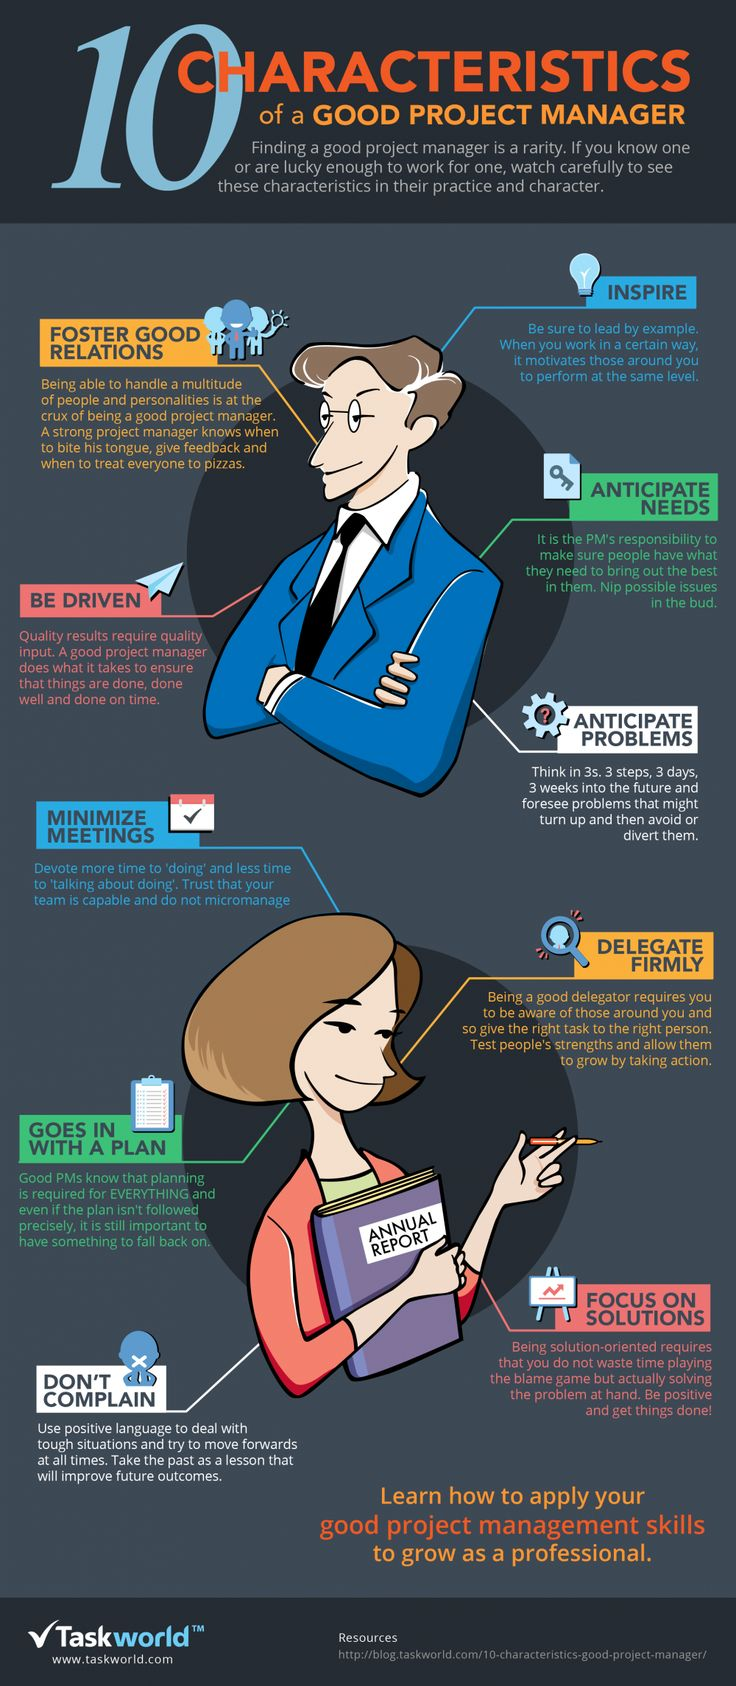 Virtual Project Consulting: a good summary of the typical characteristics you will find in a good project manager with a dose of humour.